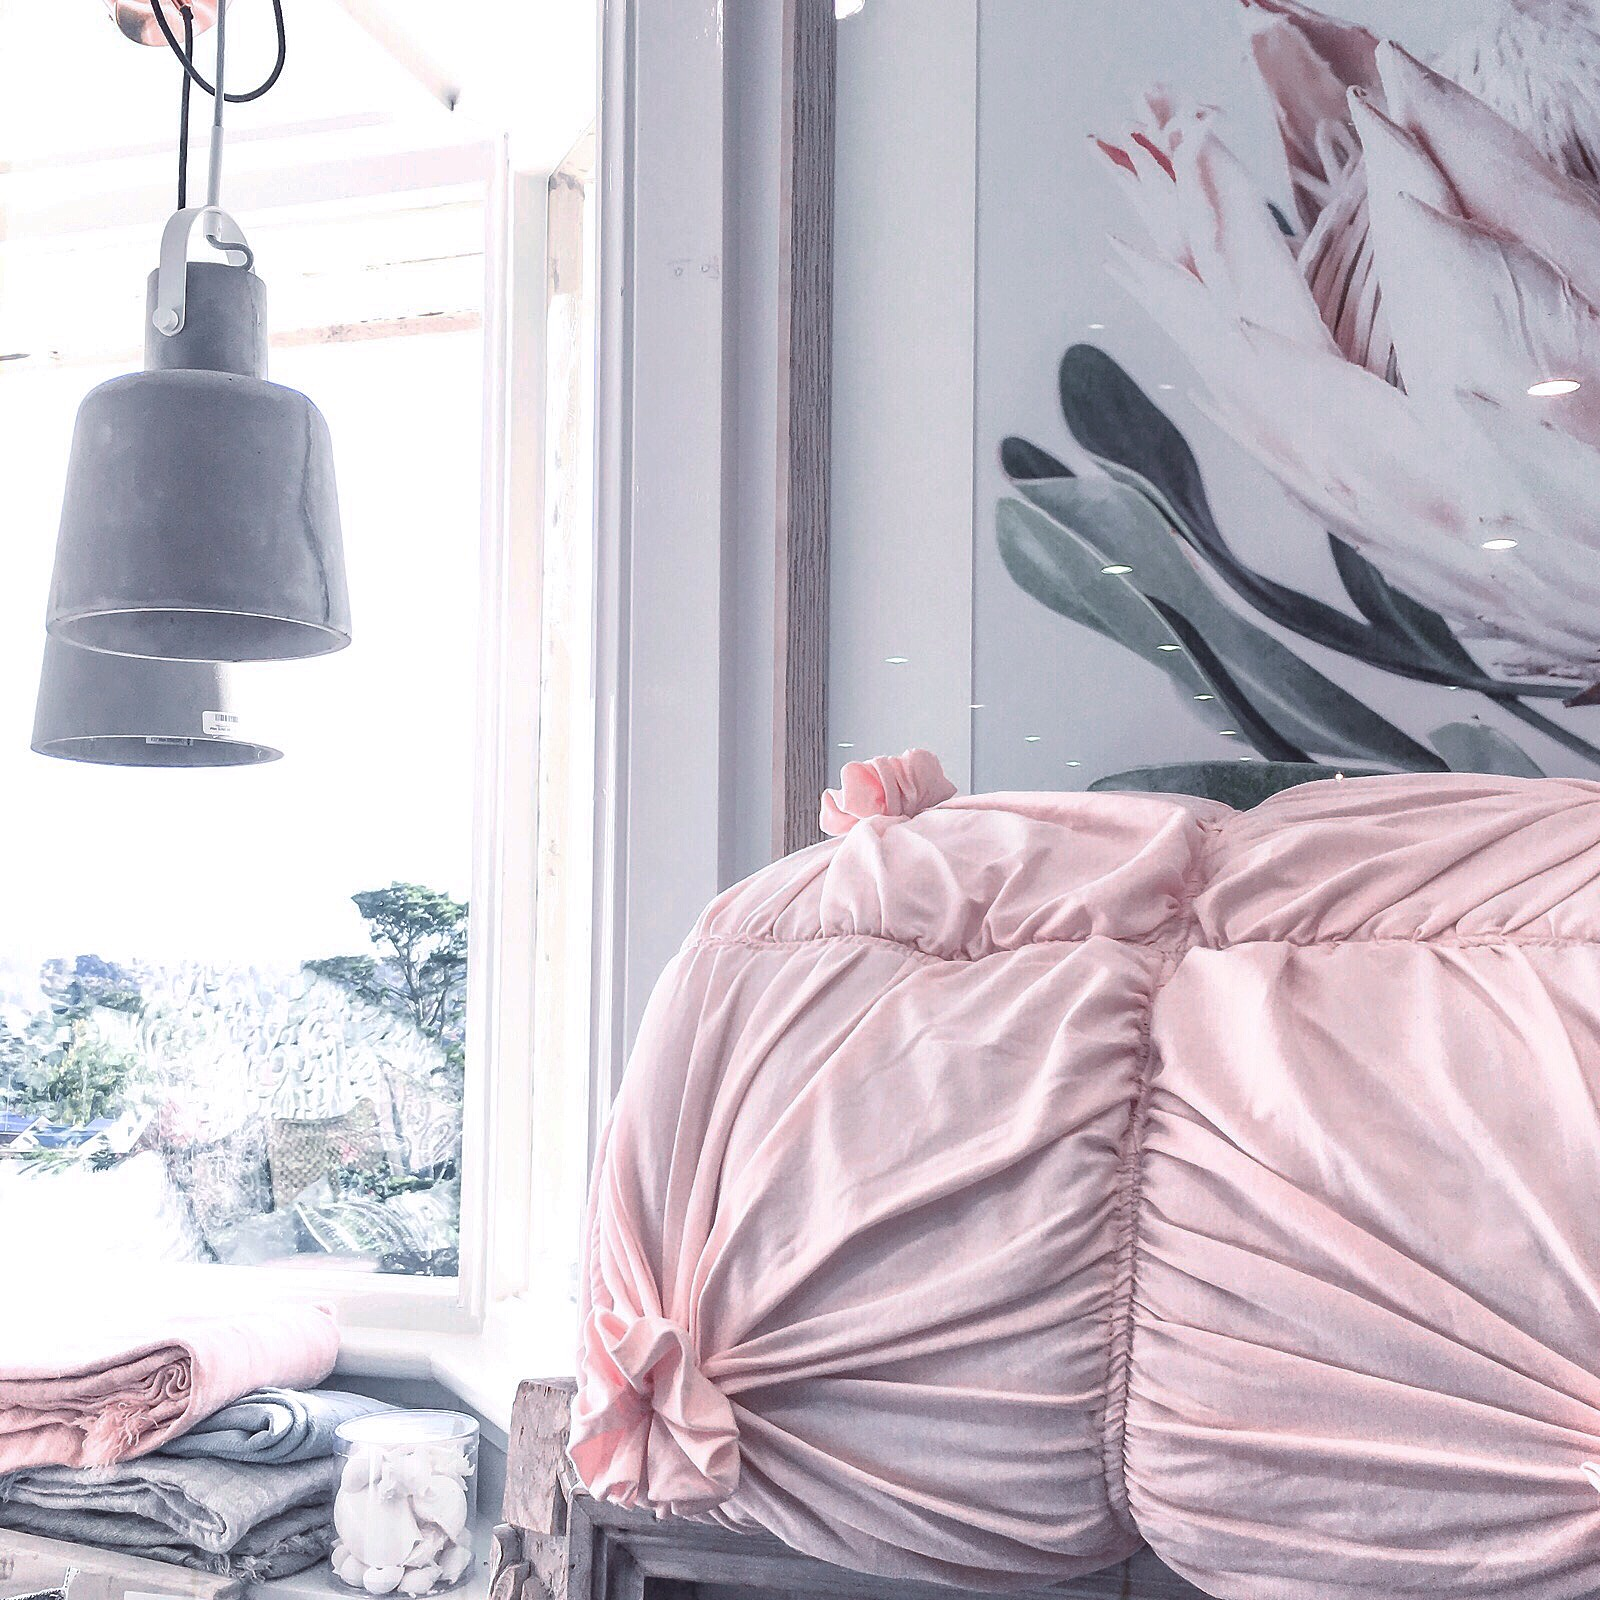 Yay or nay? Perhaps a bit of both. There will be something in this picture which inspires you. The window perhaps? Or the dusty shade of pink? The painting? Let me know!